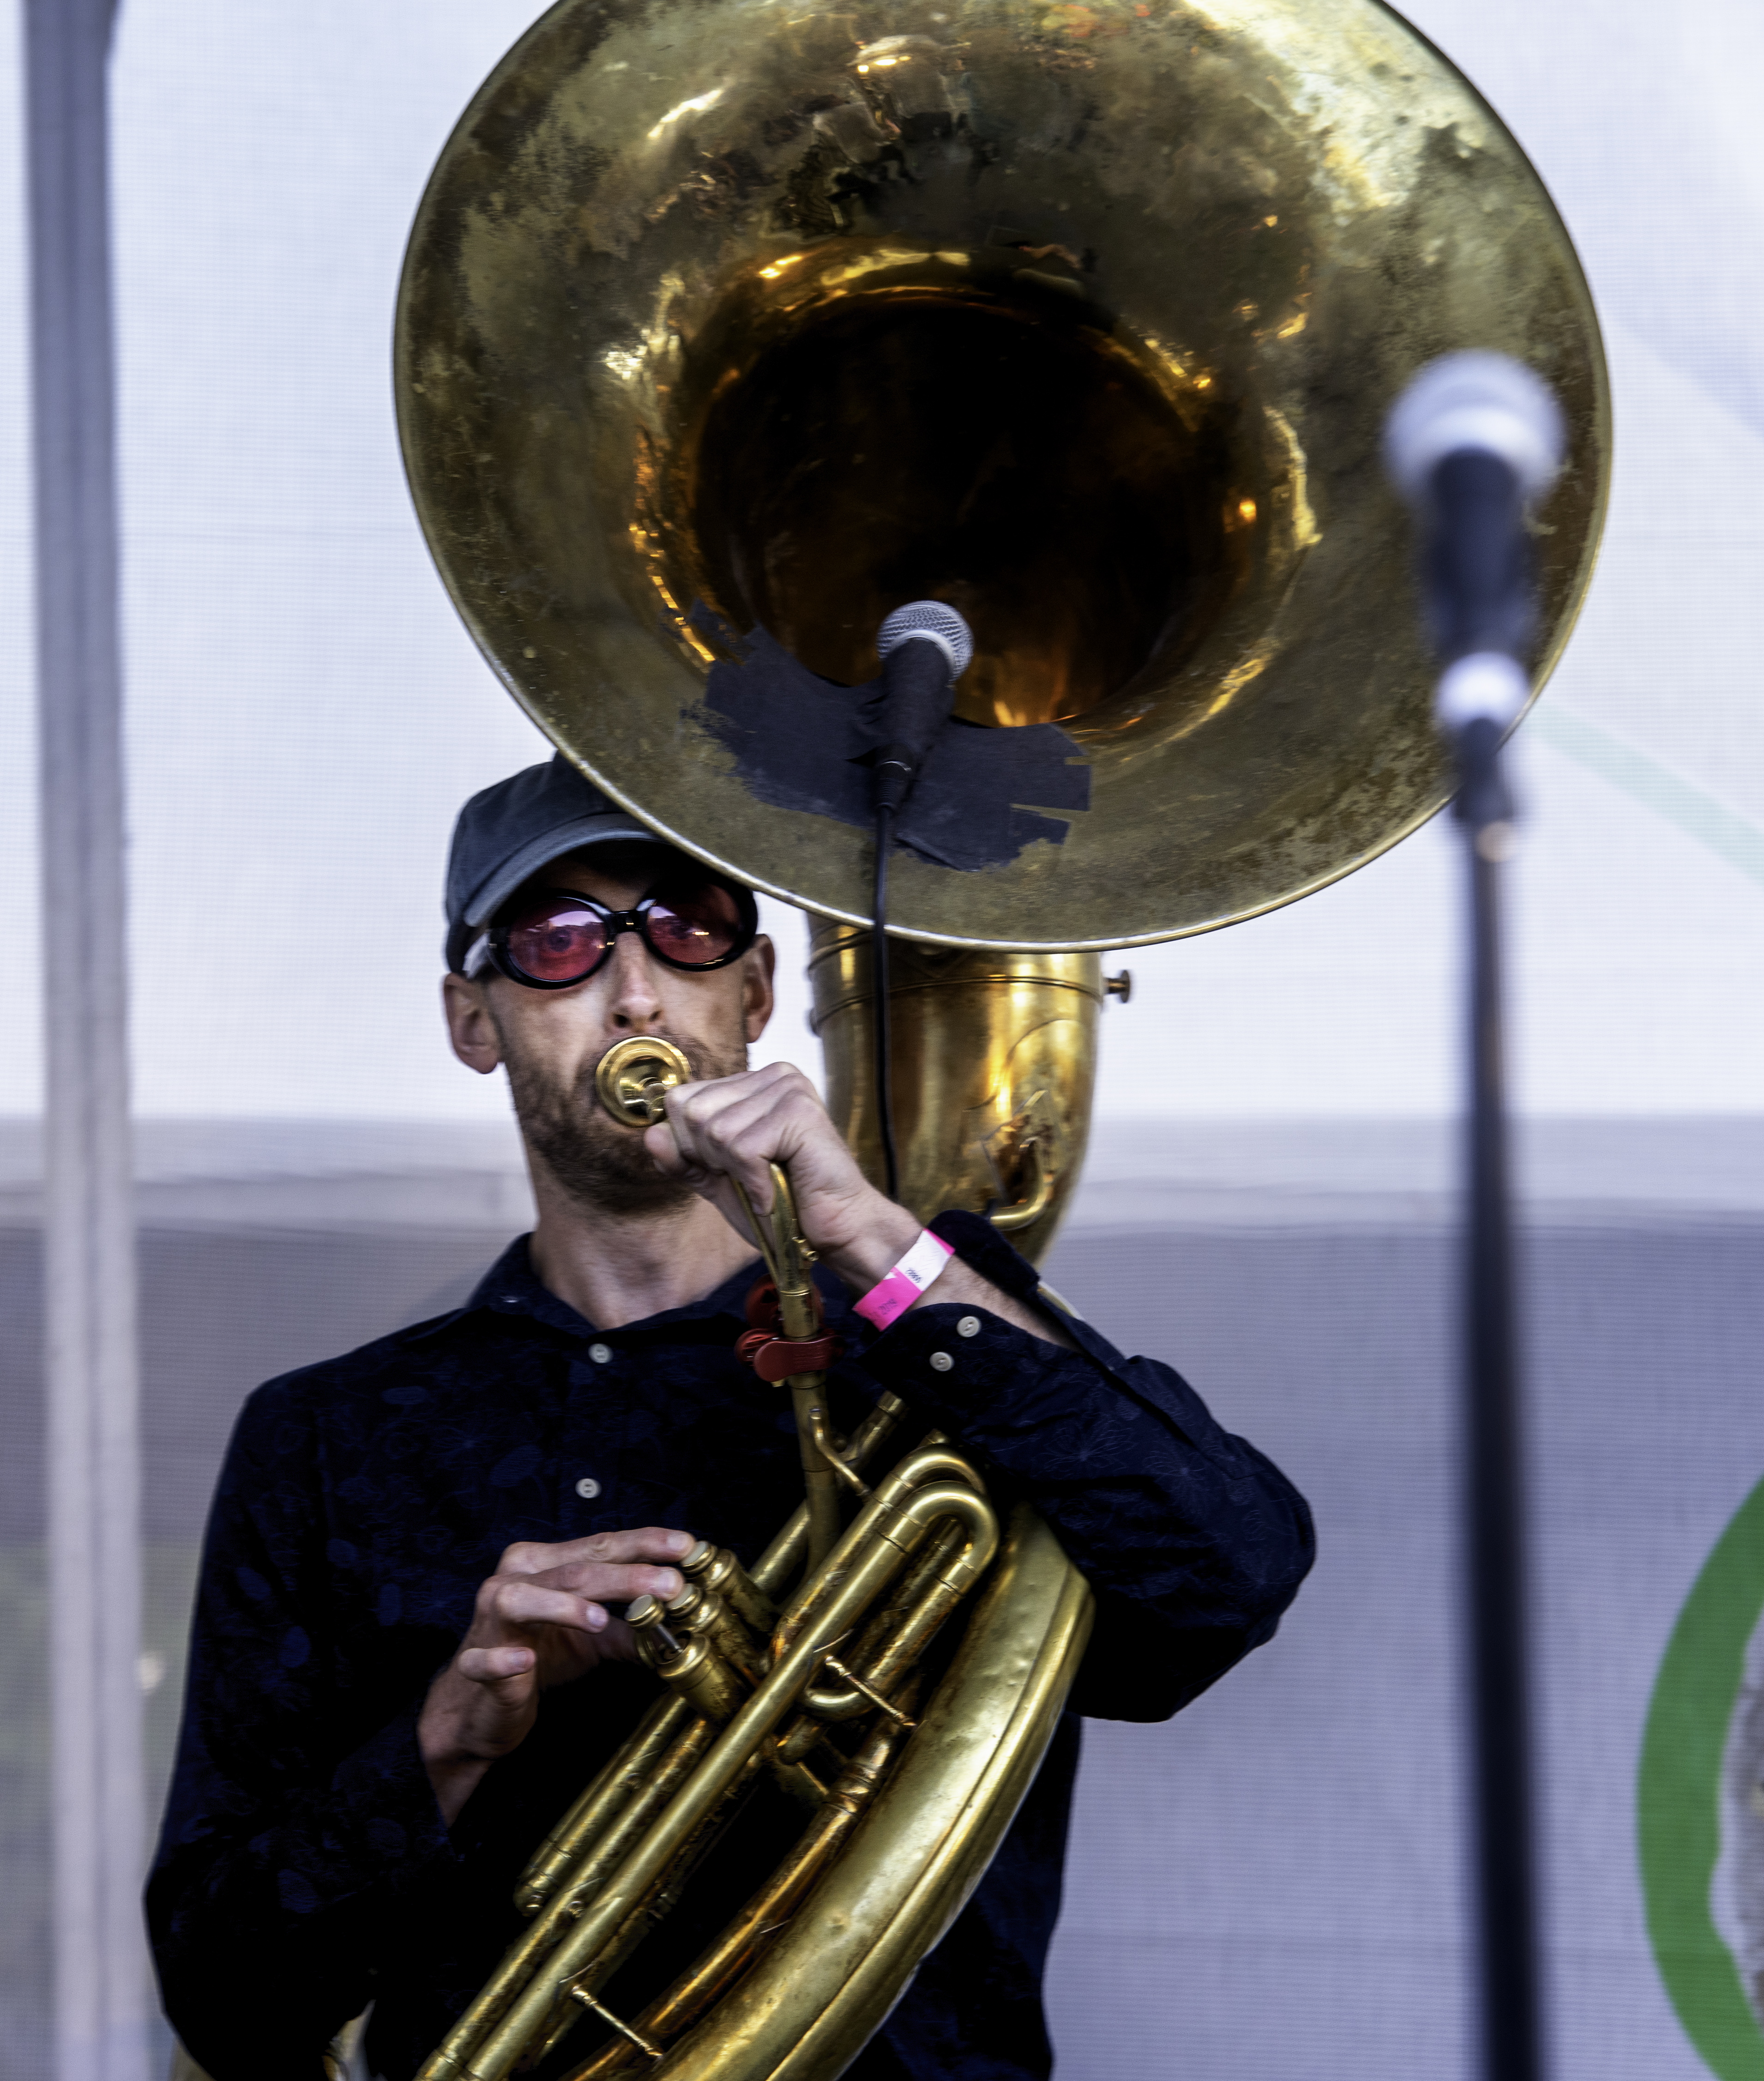 Tom Richards with the Heavyweight Brass Band at the Toronto Jazz Festival 2019